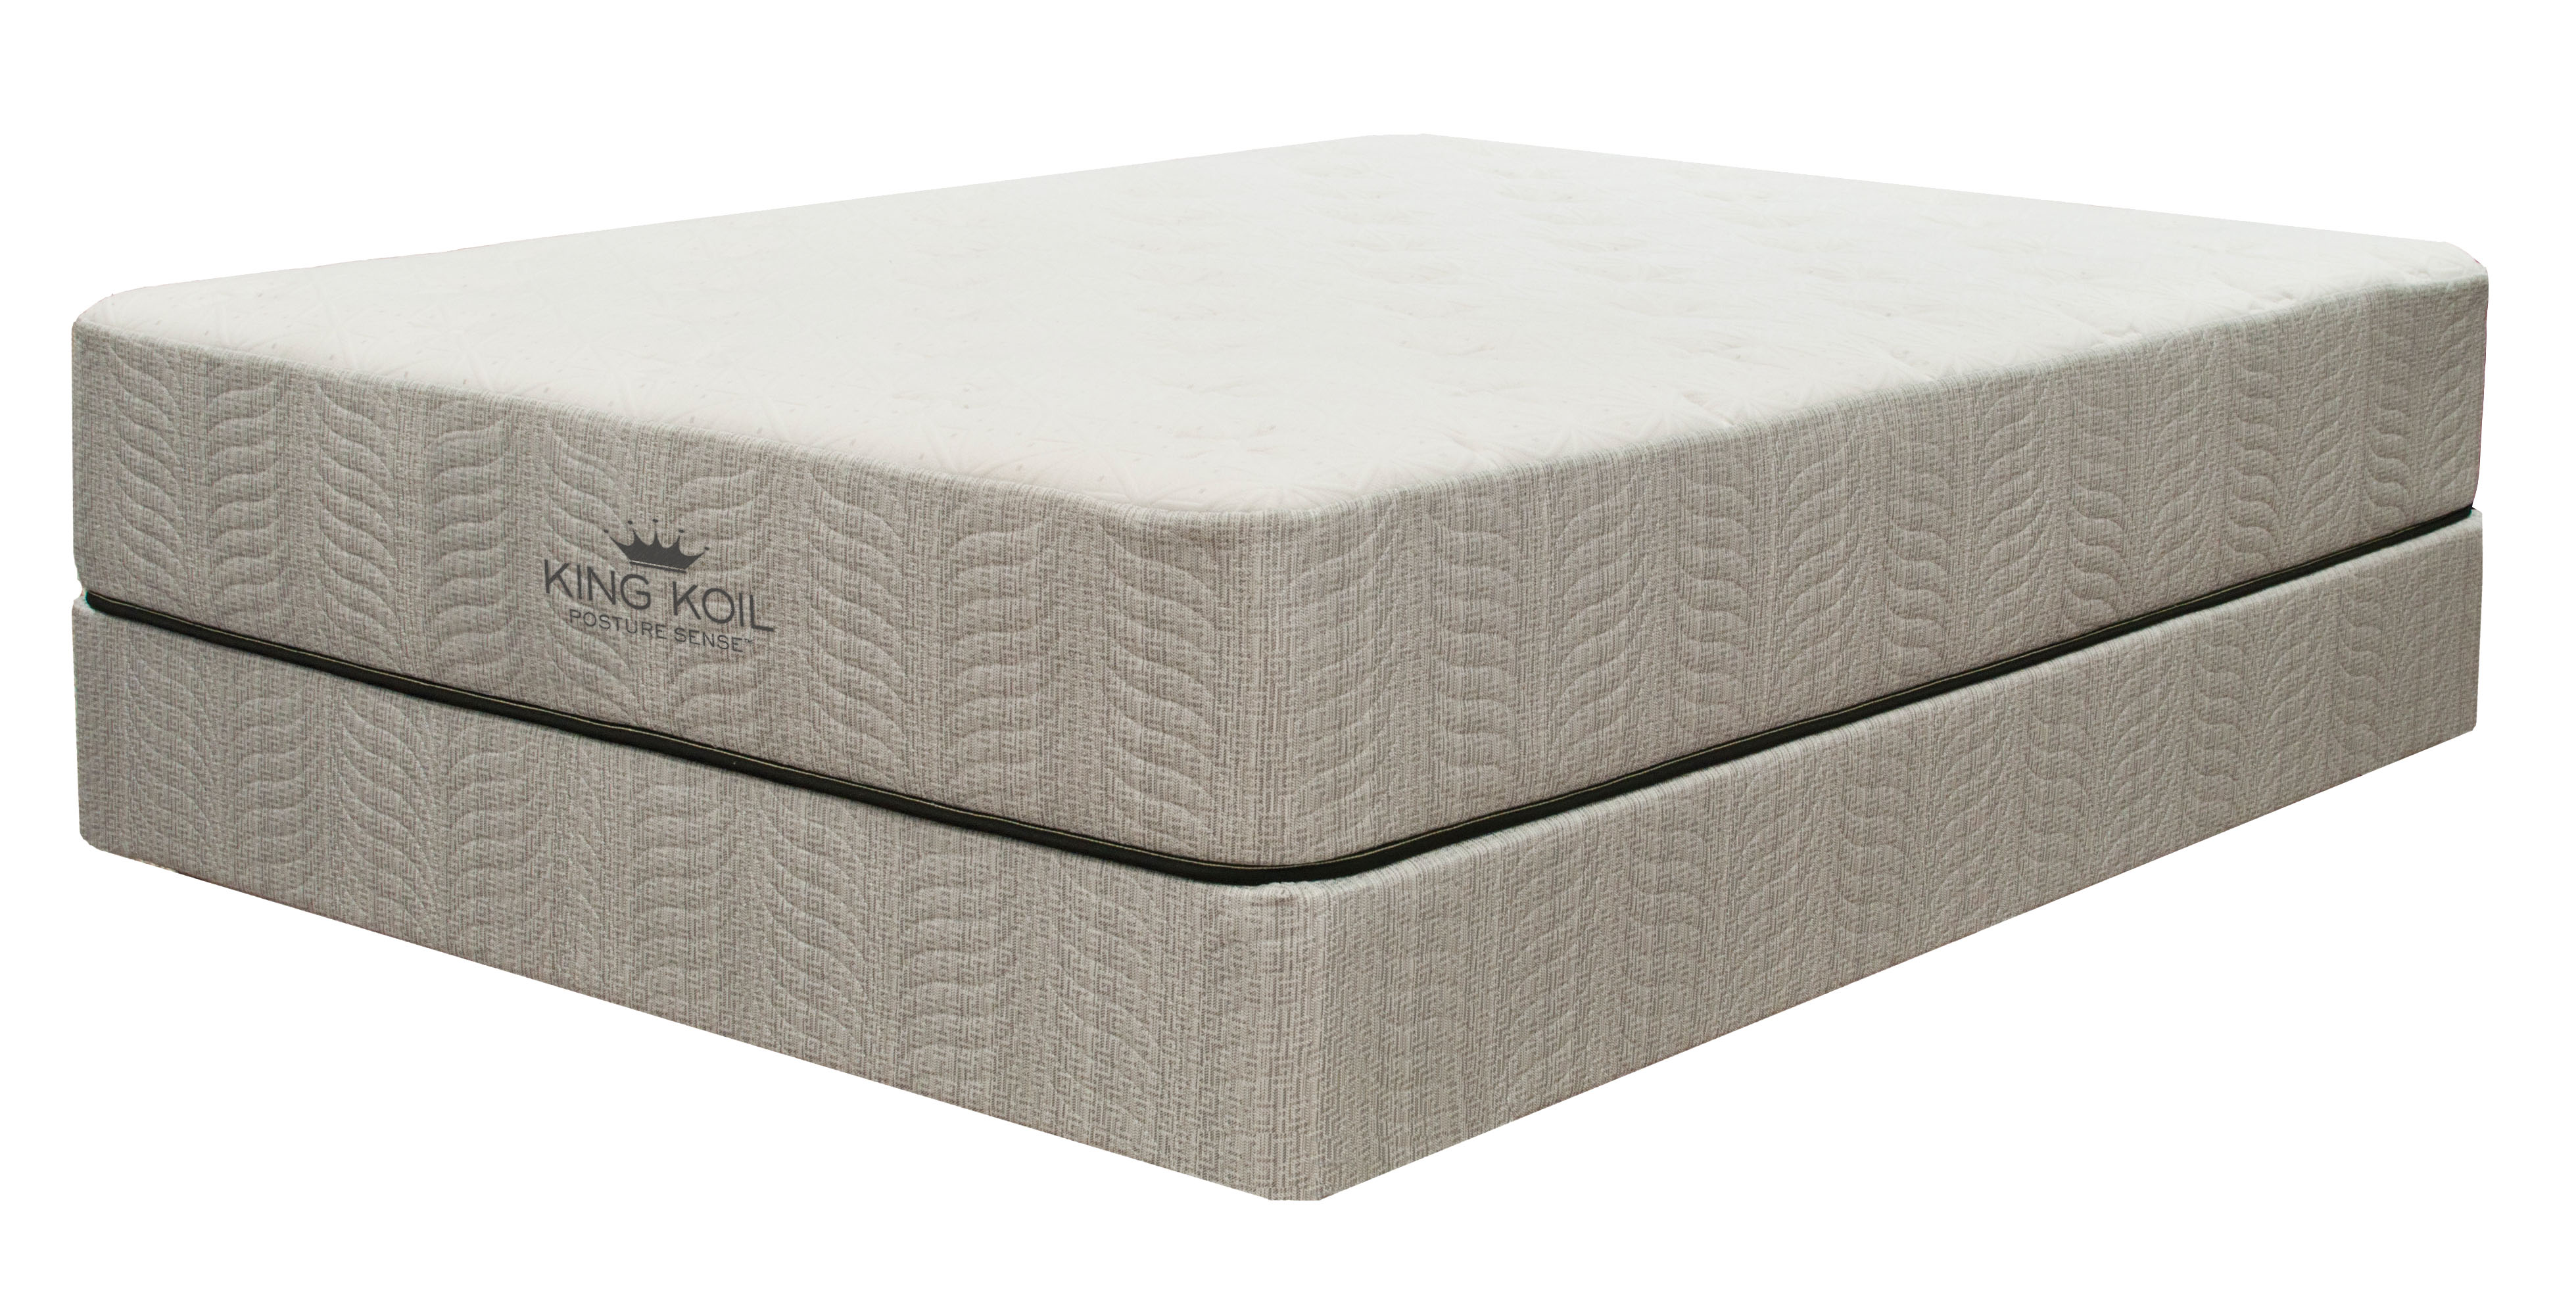 King koil series mattress reviews Mattress king